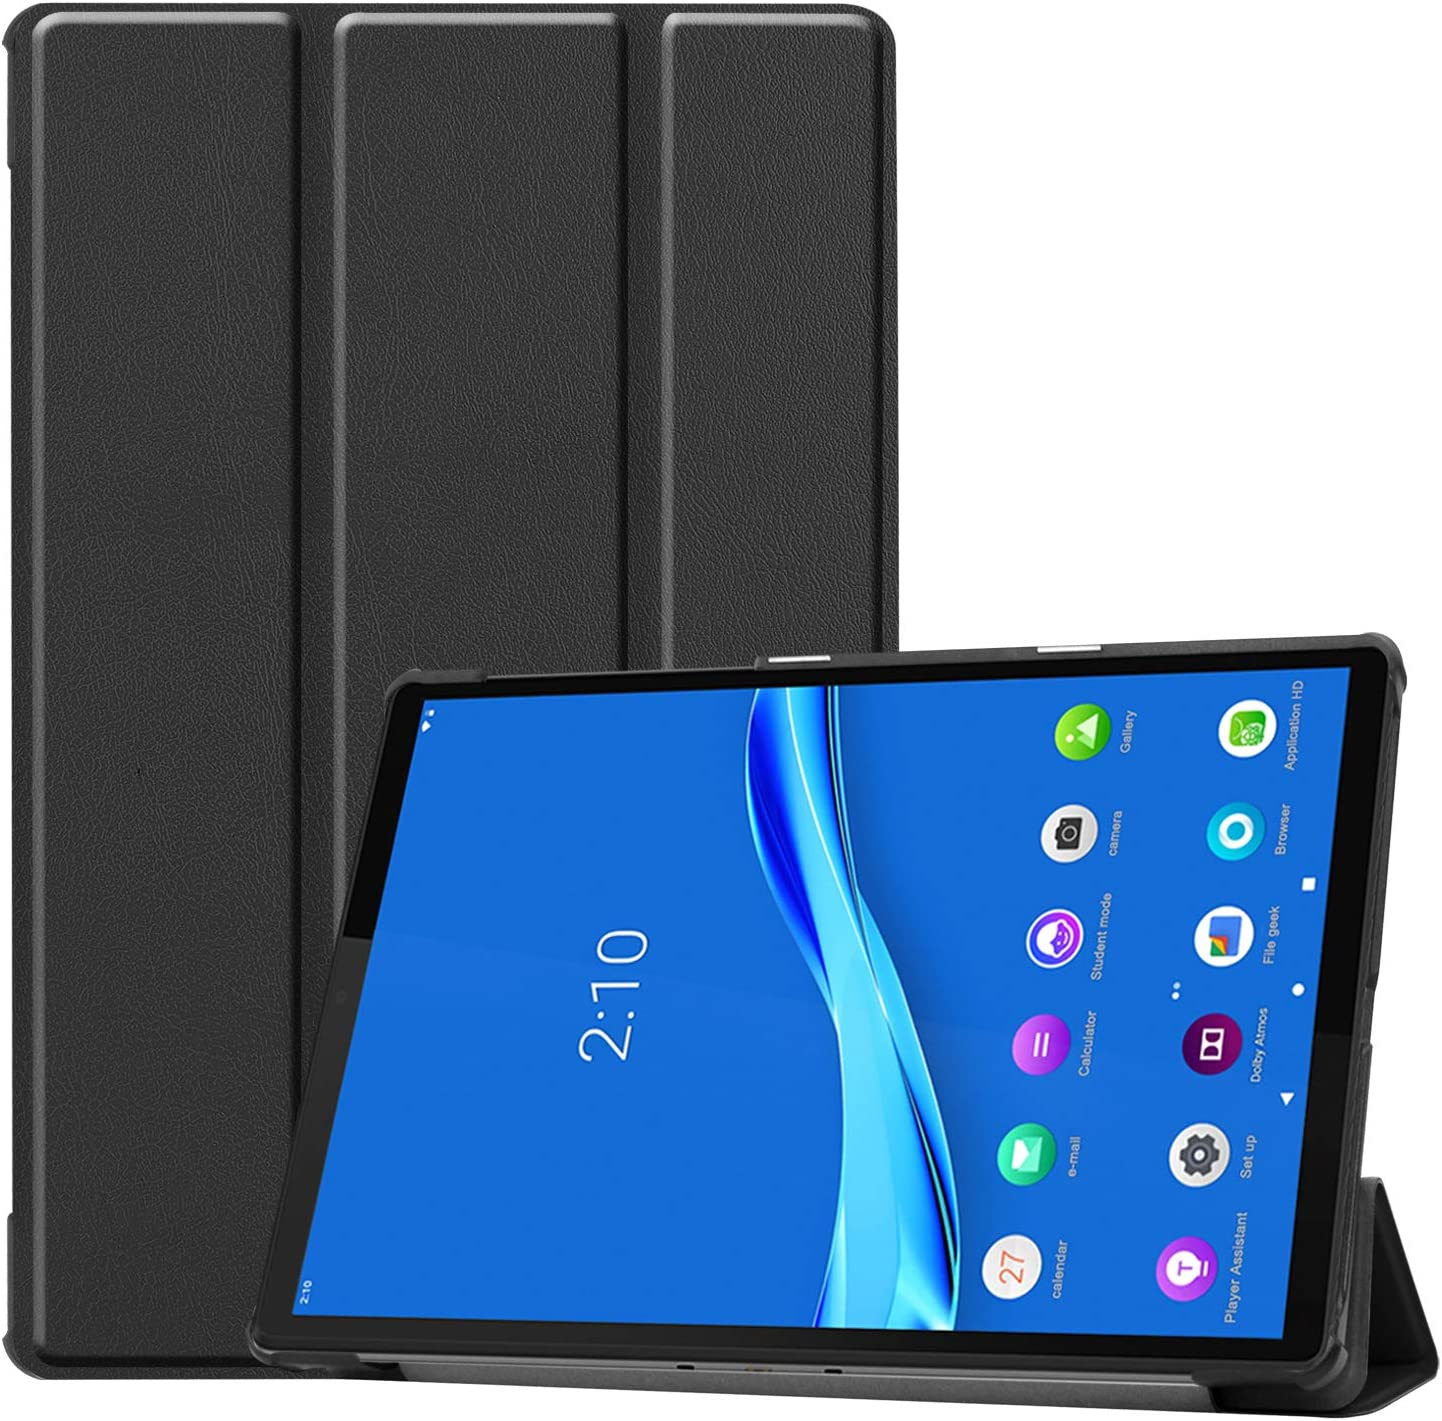 PULEN for Lenovo Tab M10 Plus Case 10.3 Inch,PU Leather Smart Case with Stand [Anti Slip][Shock-Absorption] Lightweight Protective Cover for Lenovo Smart Tab M10 Plus 2020 (Black)